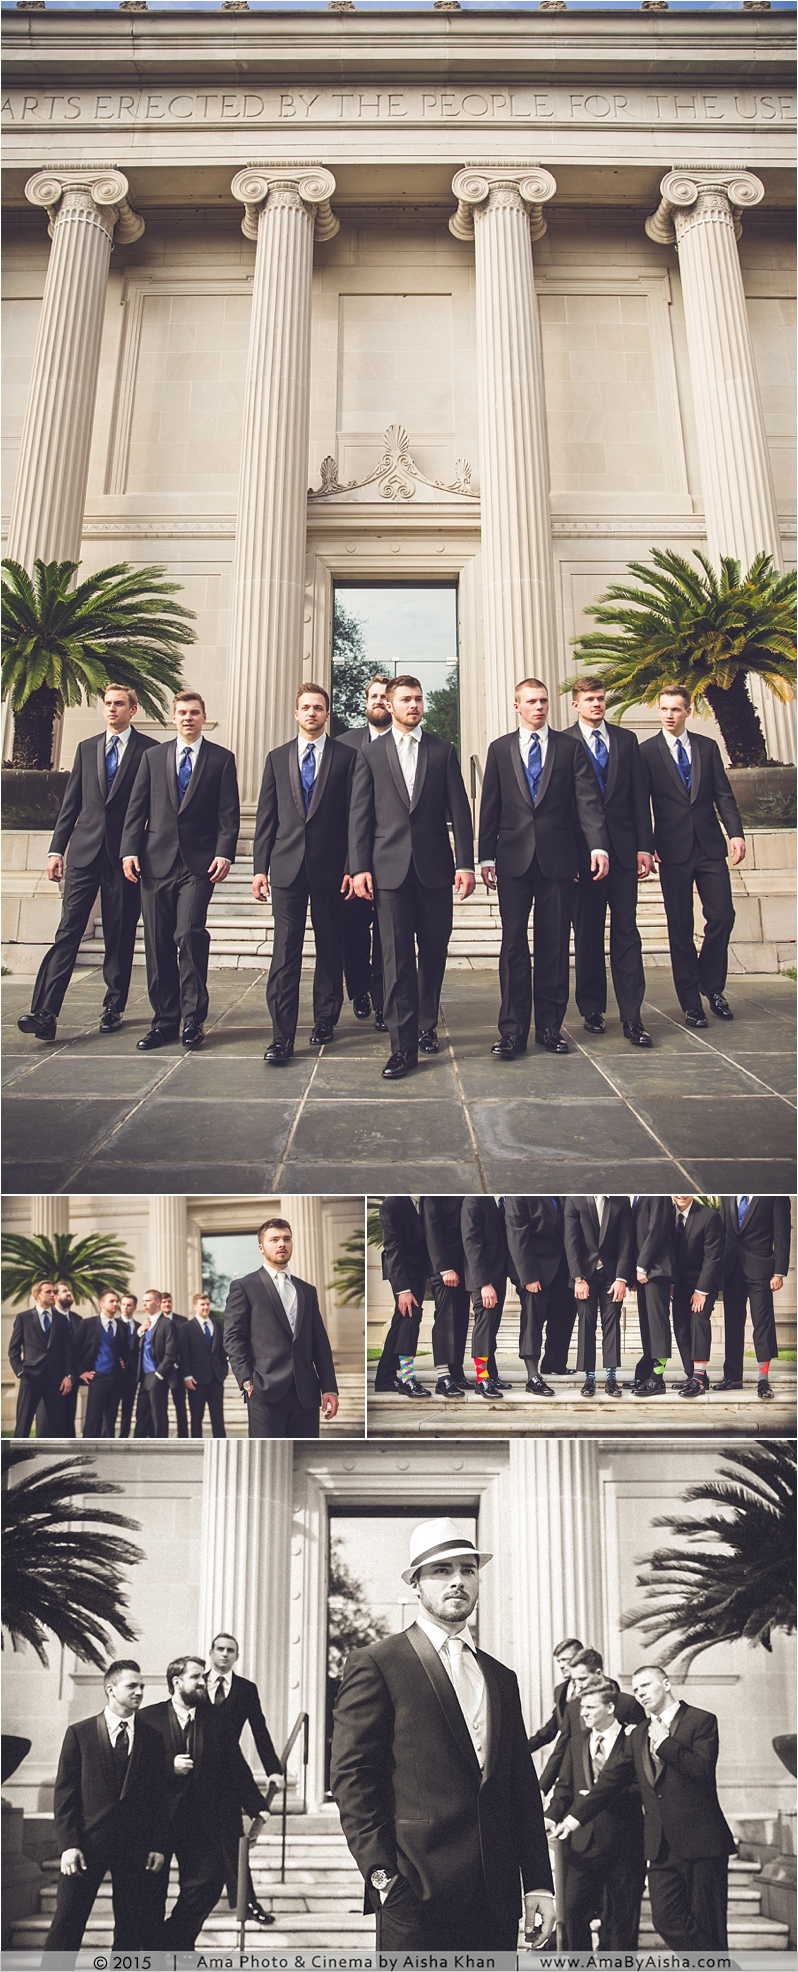 Groomsmen photography at MFAH - Museum of Fine Arts Houston next to Hotel Zaza